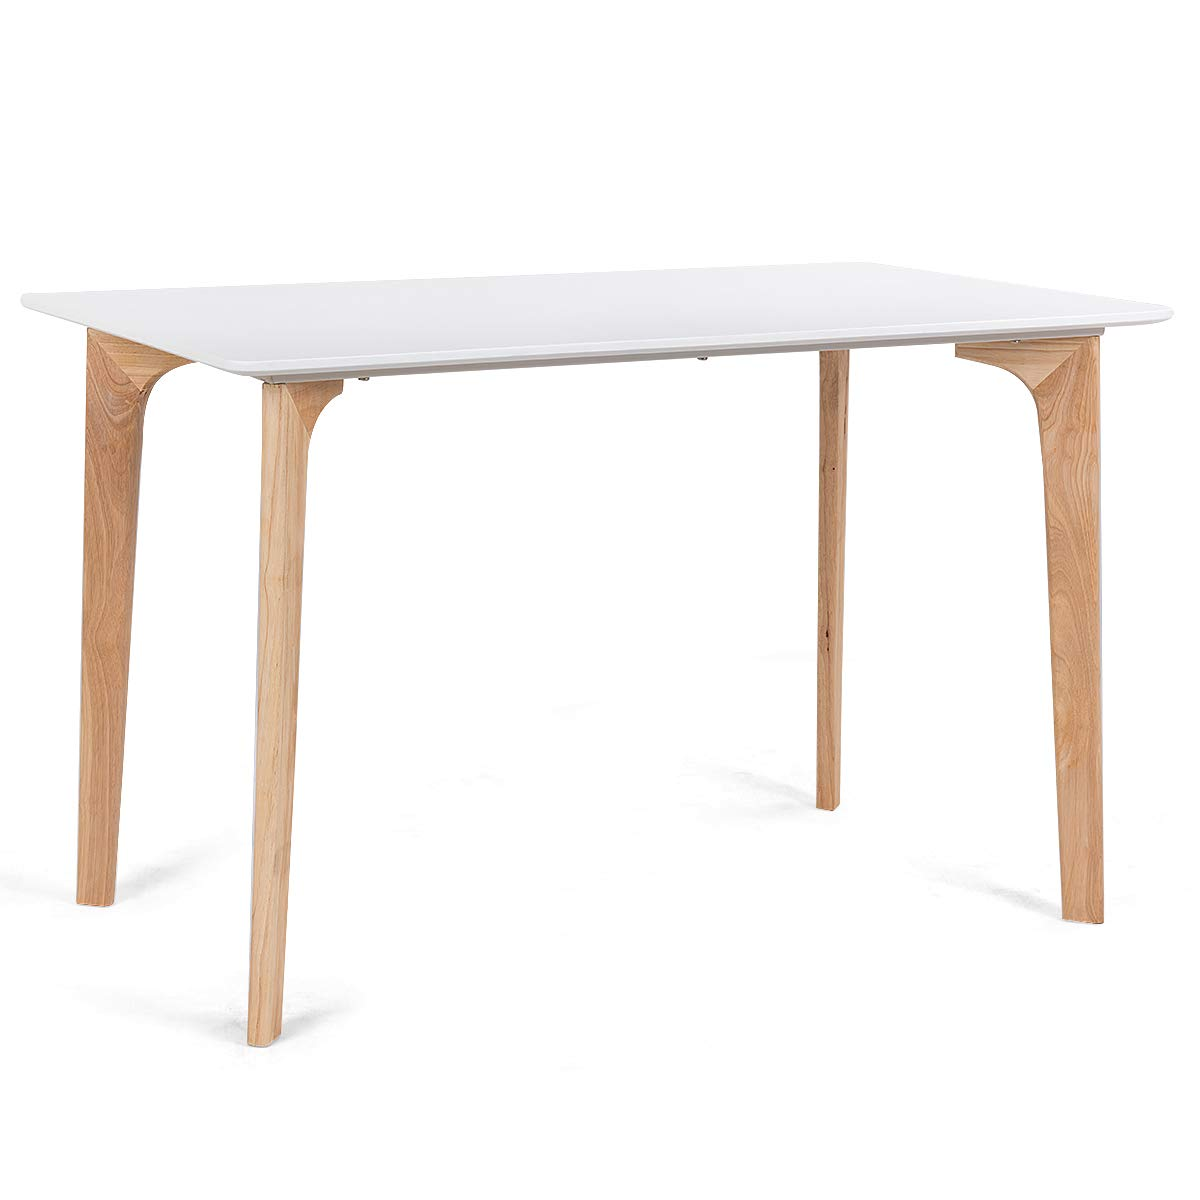 Giantex Modern Dining Table Mid-Century Home Dining Room Kitchen Table w/Rectangular Top Wood Legs 47.5'' x 27.5'' White by Giantex